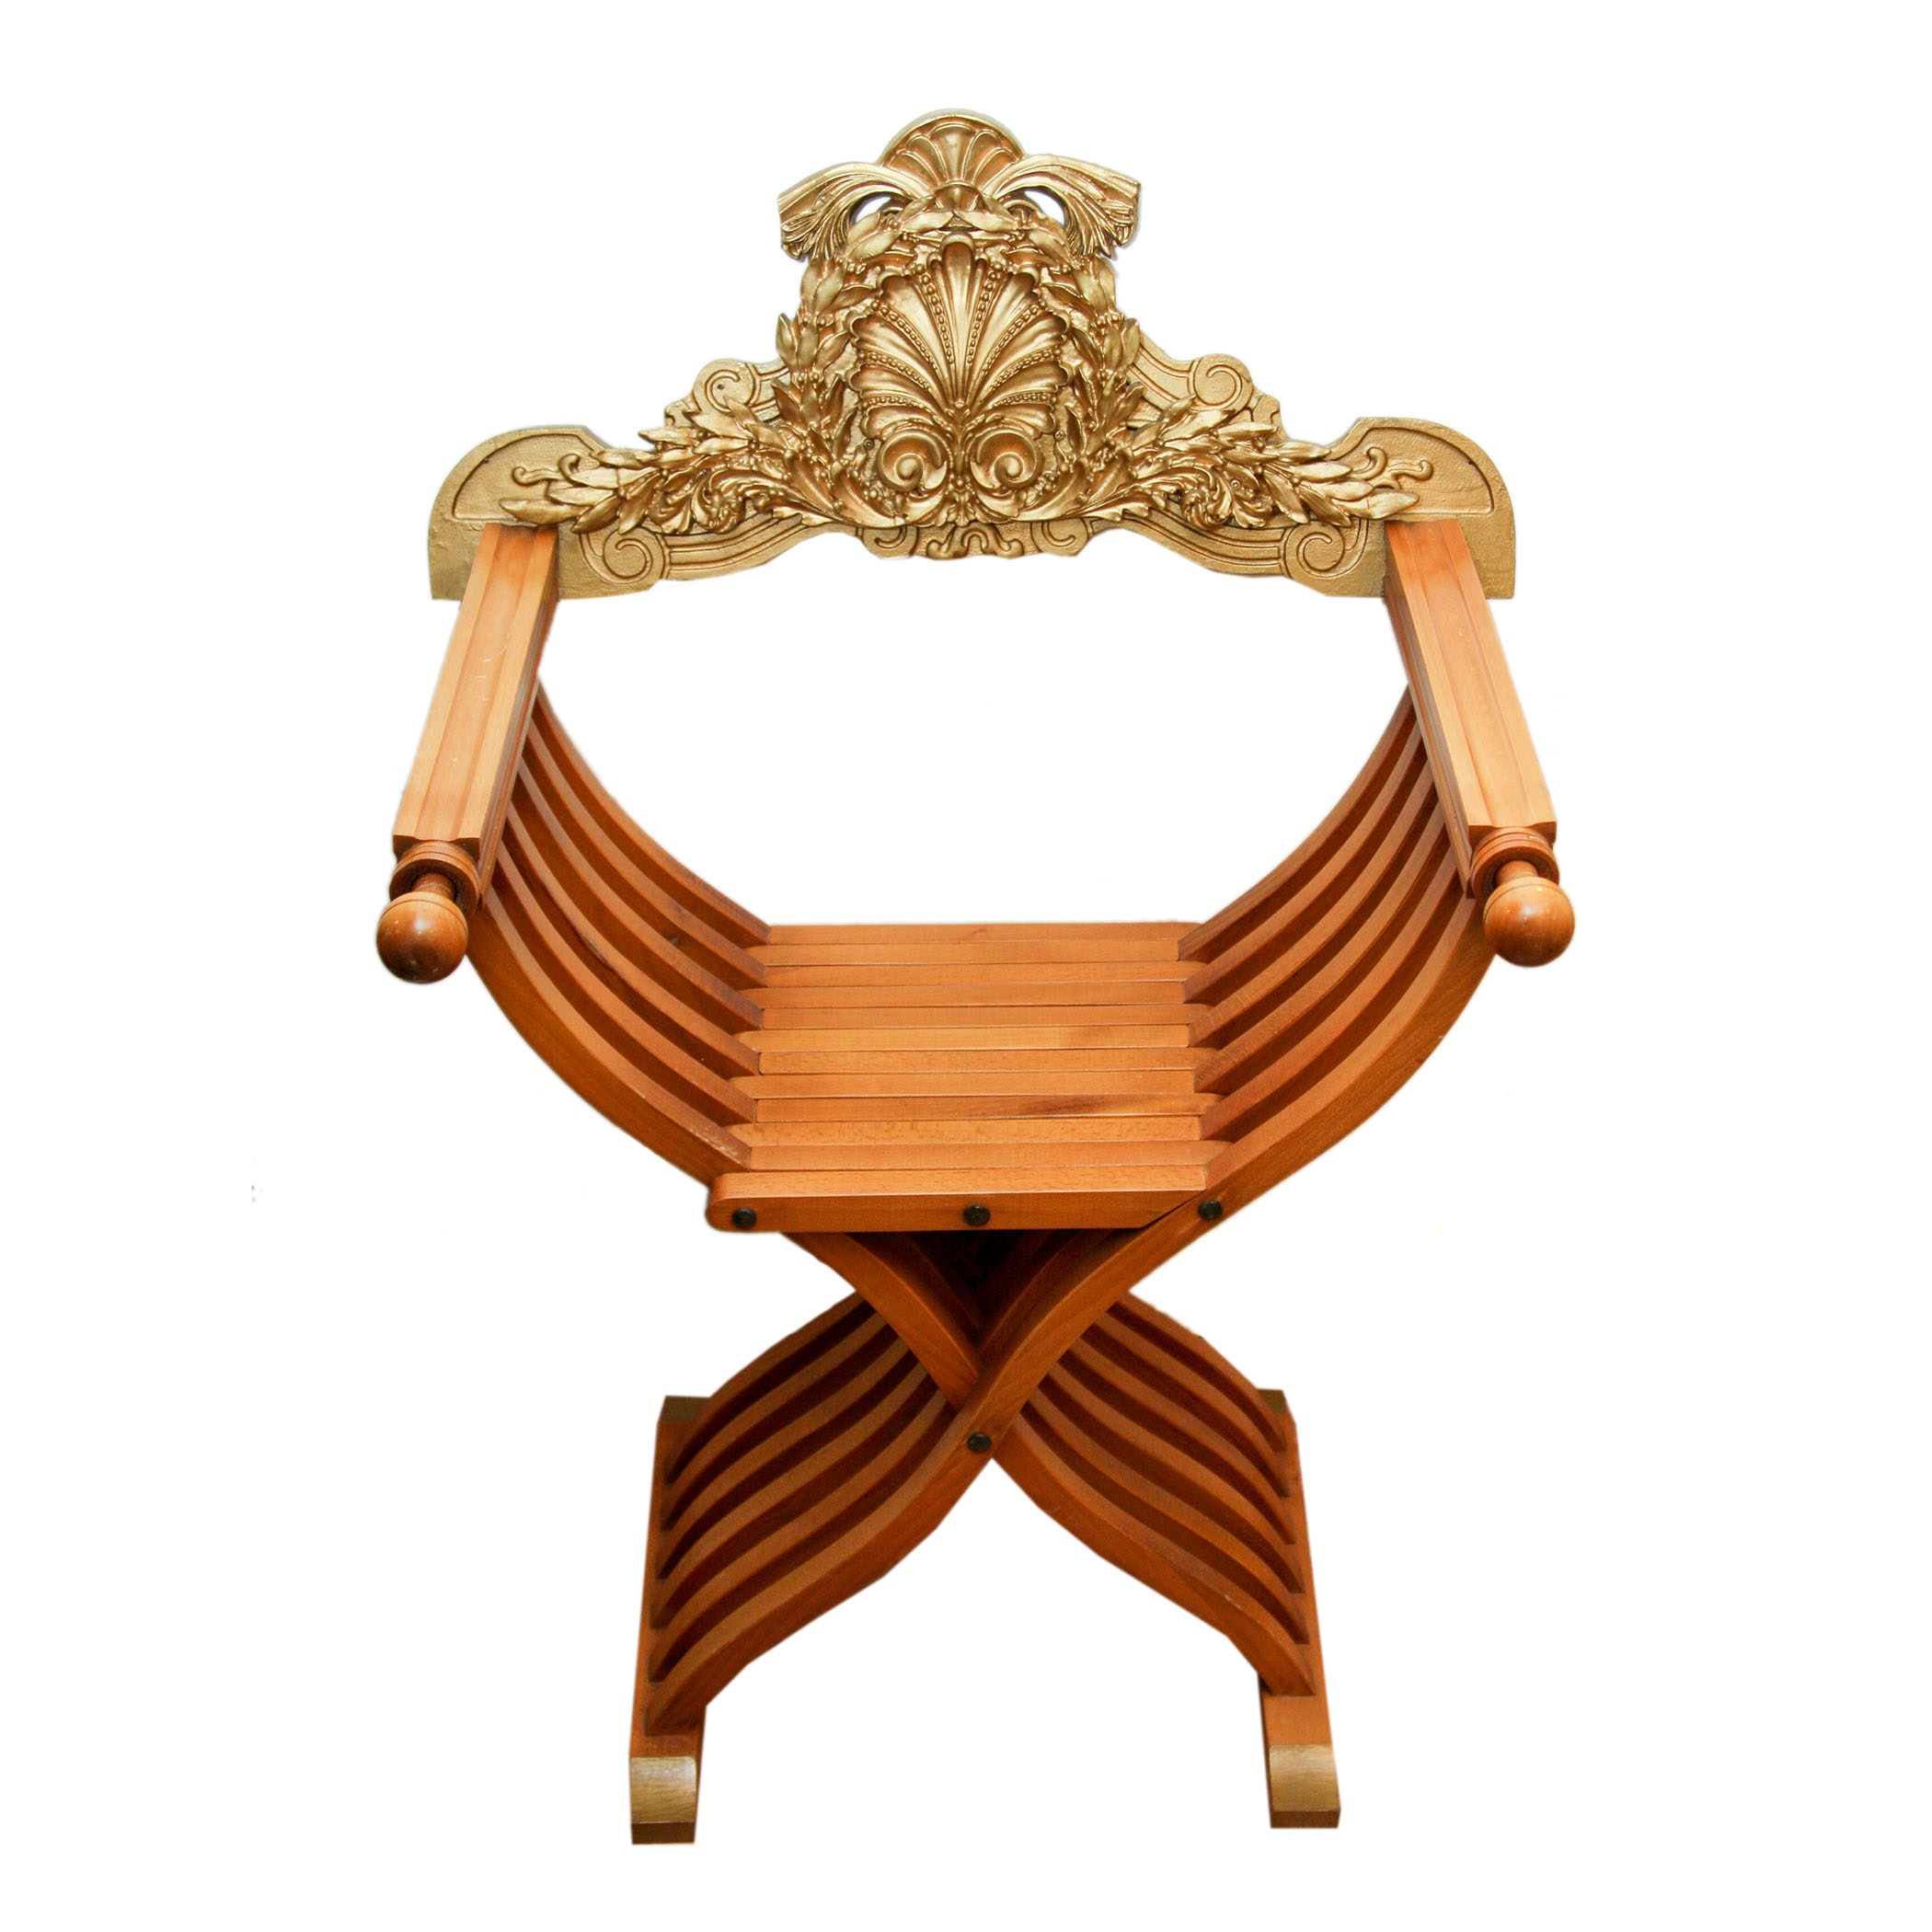 Ancient Egyptian-Style Folding Chair